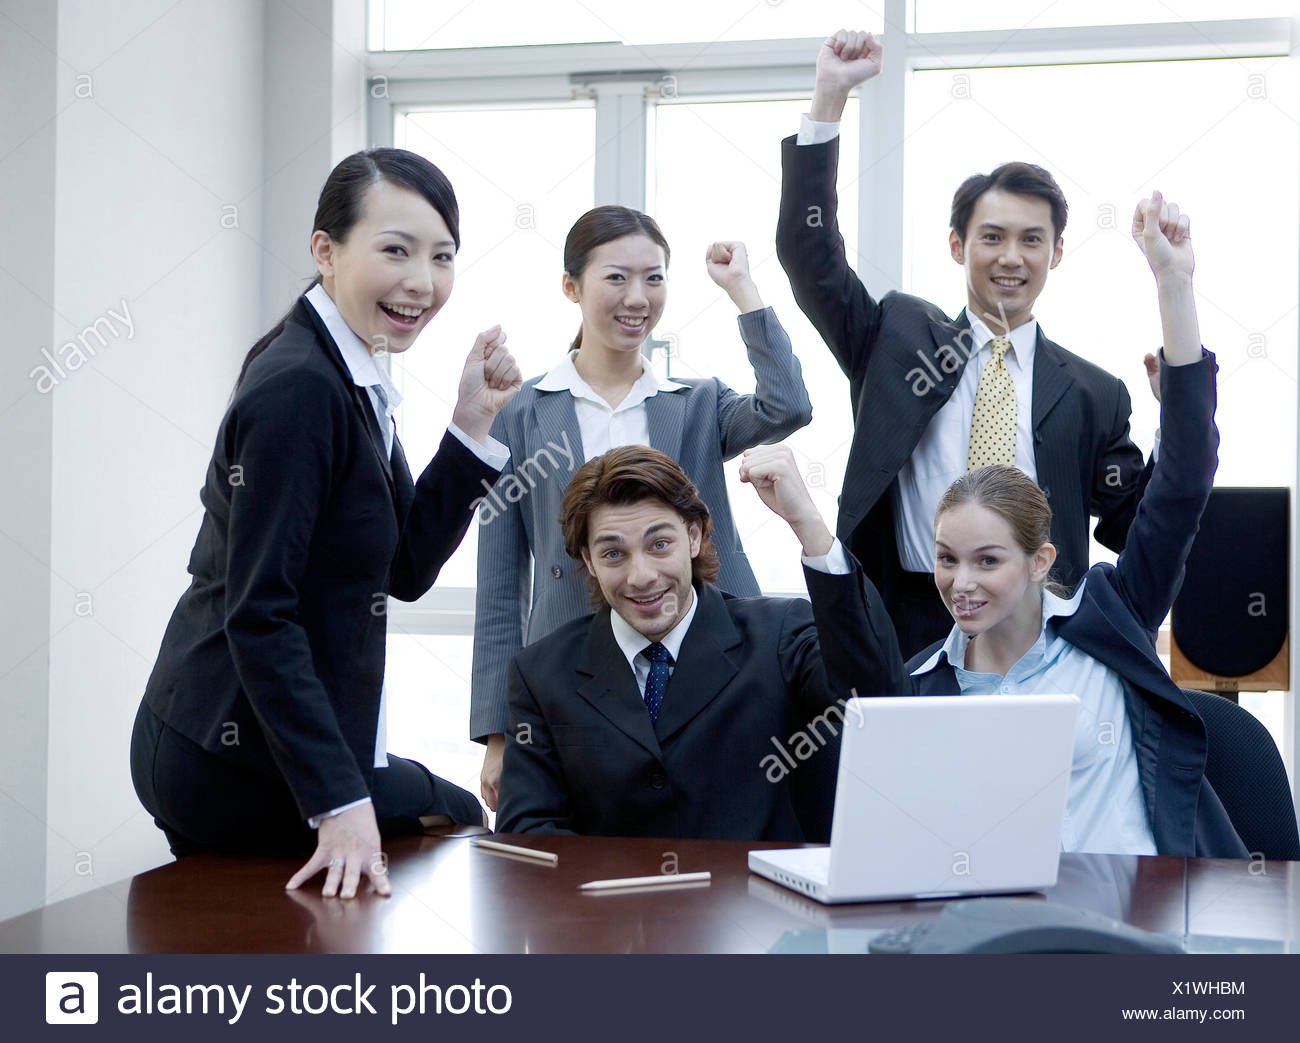 business teamwork disussing meeting - Stock Image